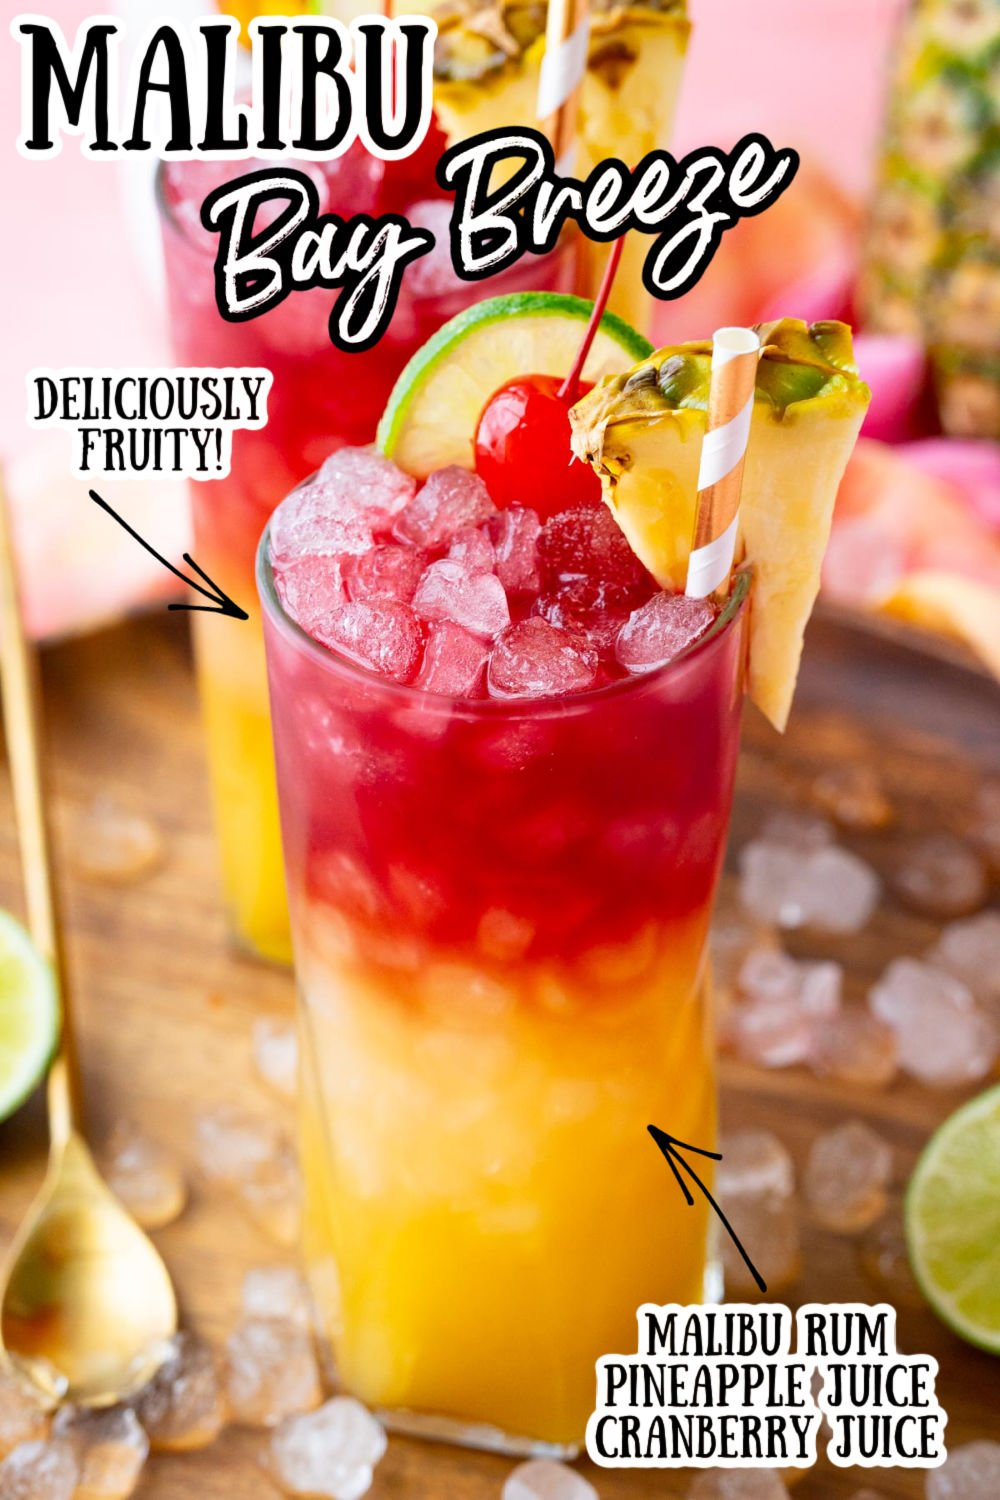 Malibu Bay Breeze is a fruity, layered cocktail bursting with the best tropical flavors! Just one sip of this refreshing drink of coconut rum, pineapple juice, and cranberry juice will have you wishing you were on island time! via @sugarandsoulco